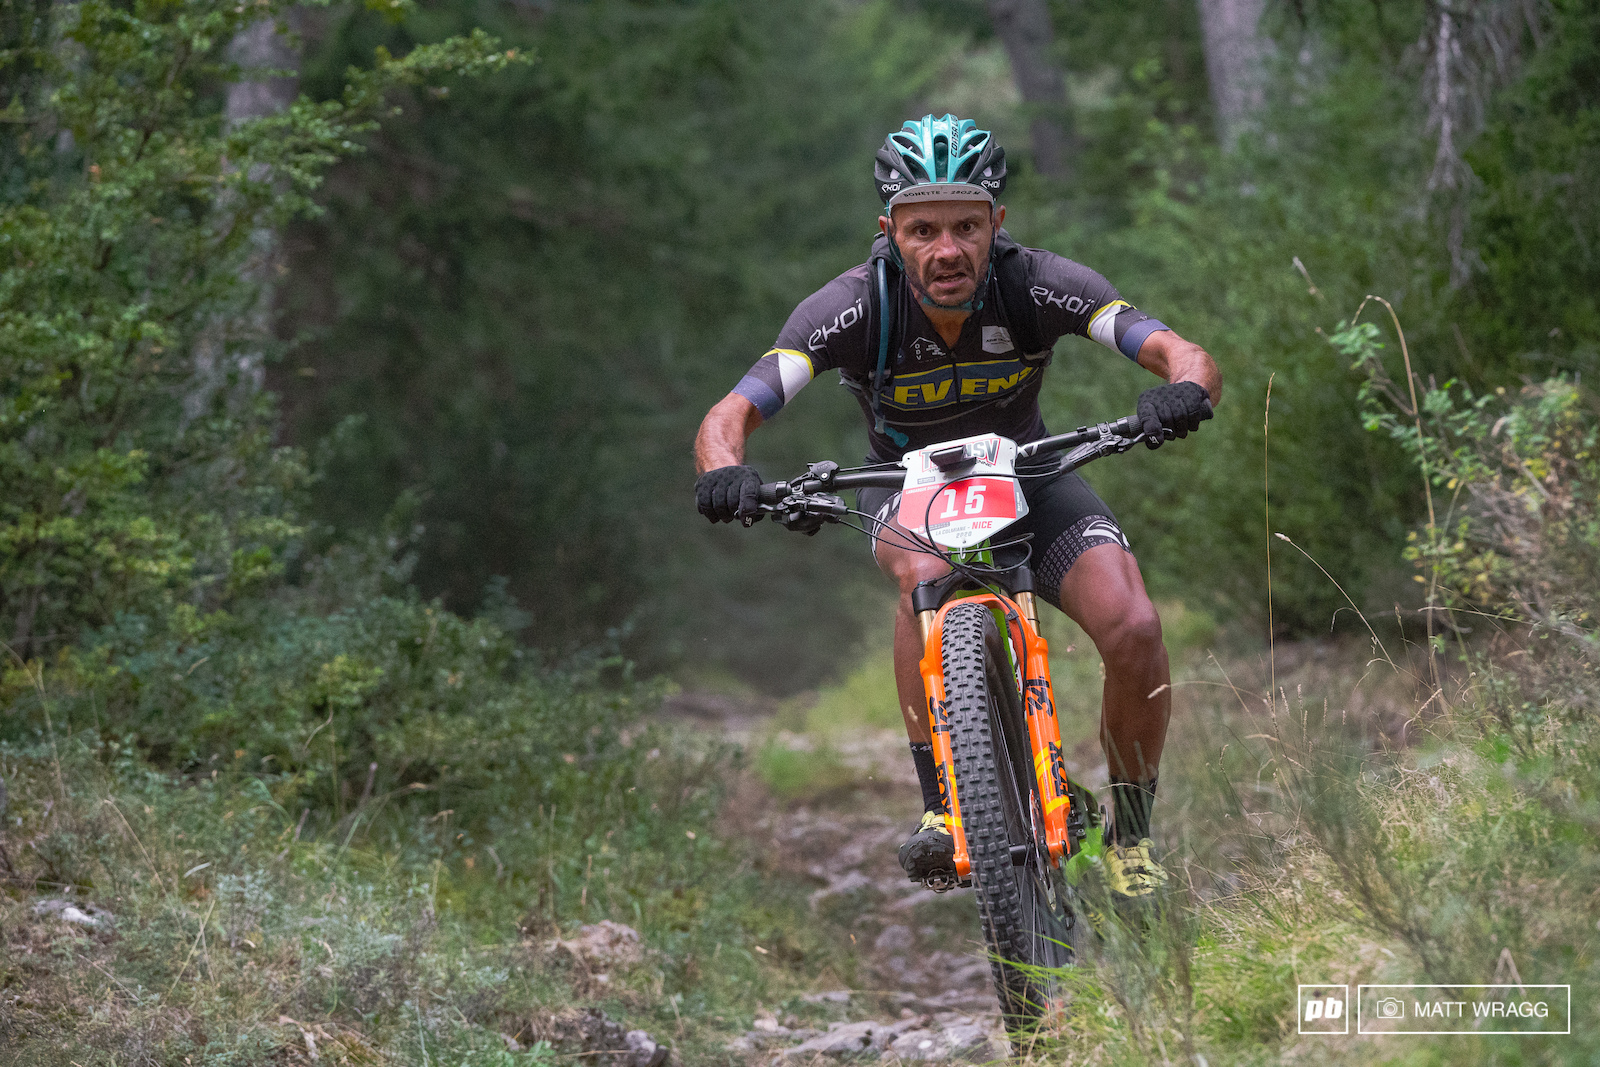 Didier Langasque hanging it all out in the Masters 40 category.